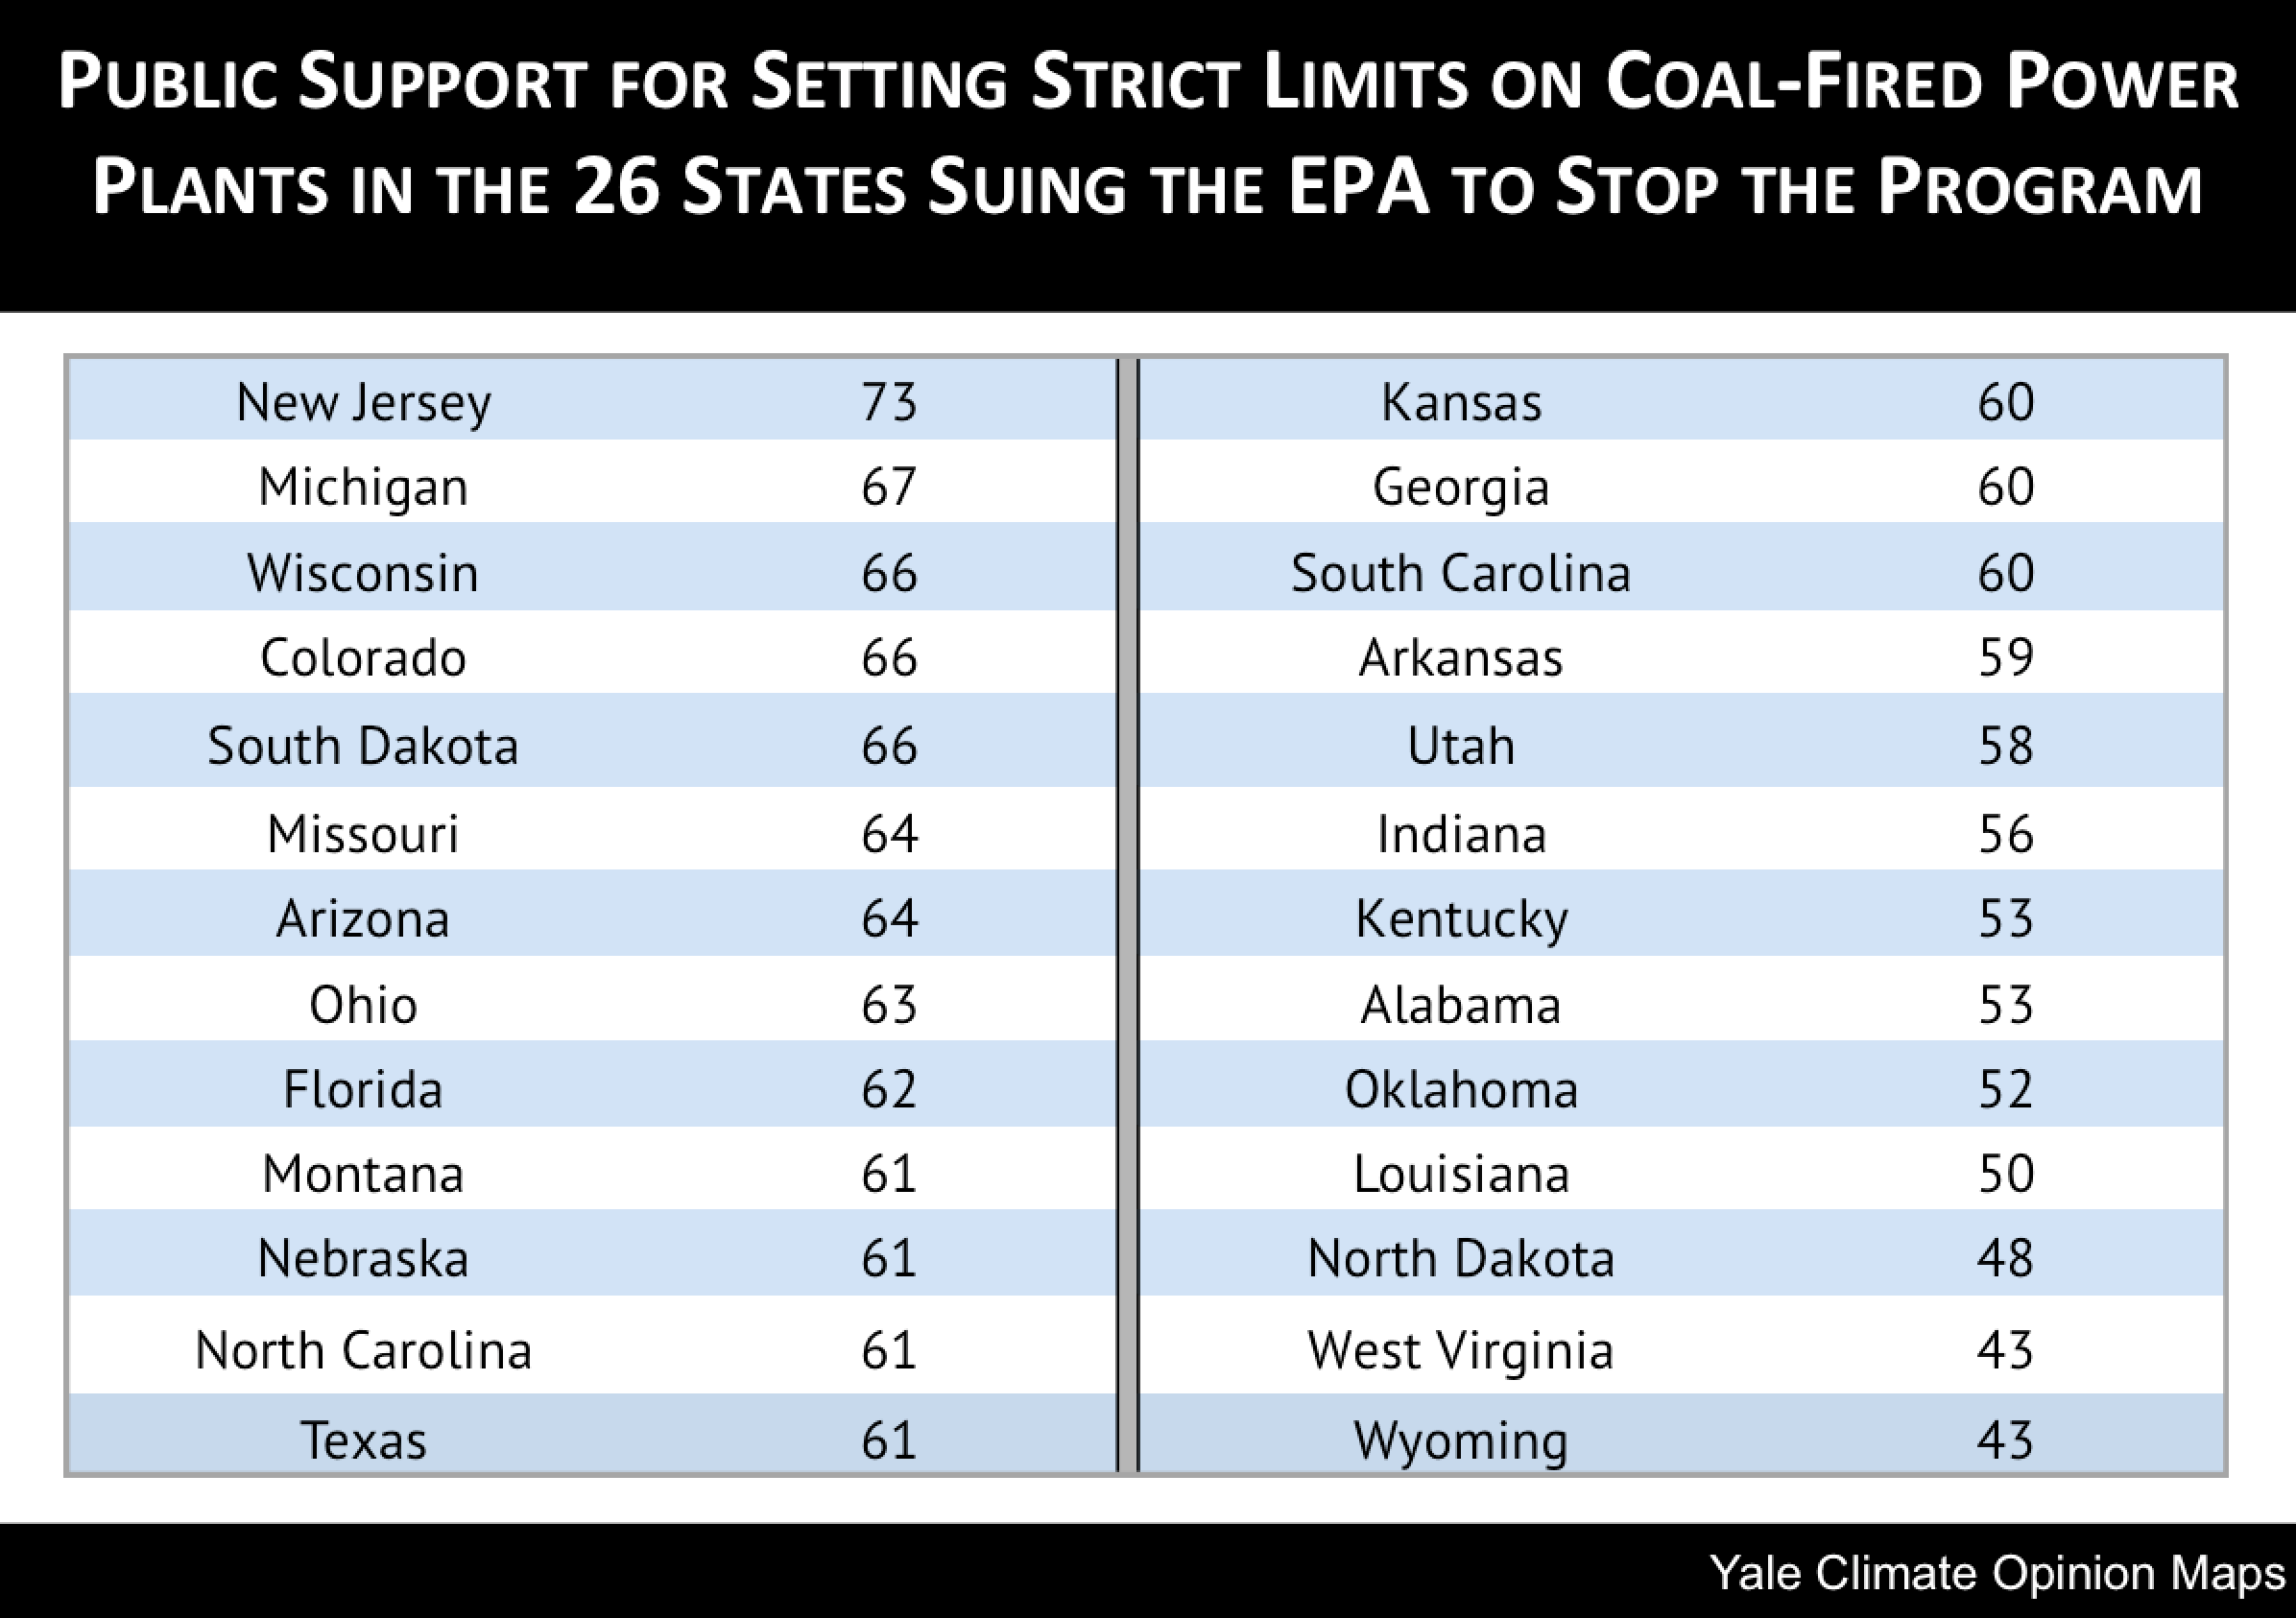 Image for Public Support for Limits on Coal-Fired Power